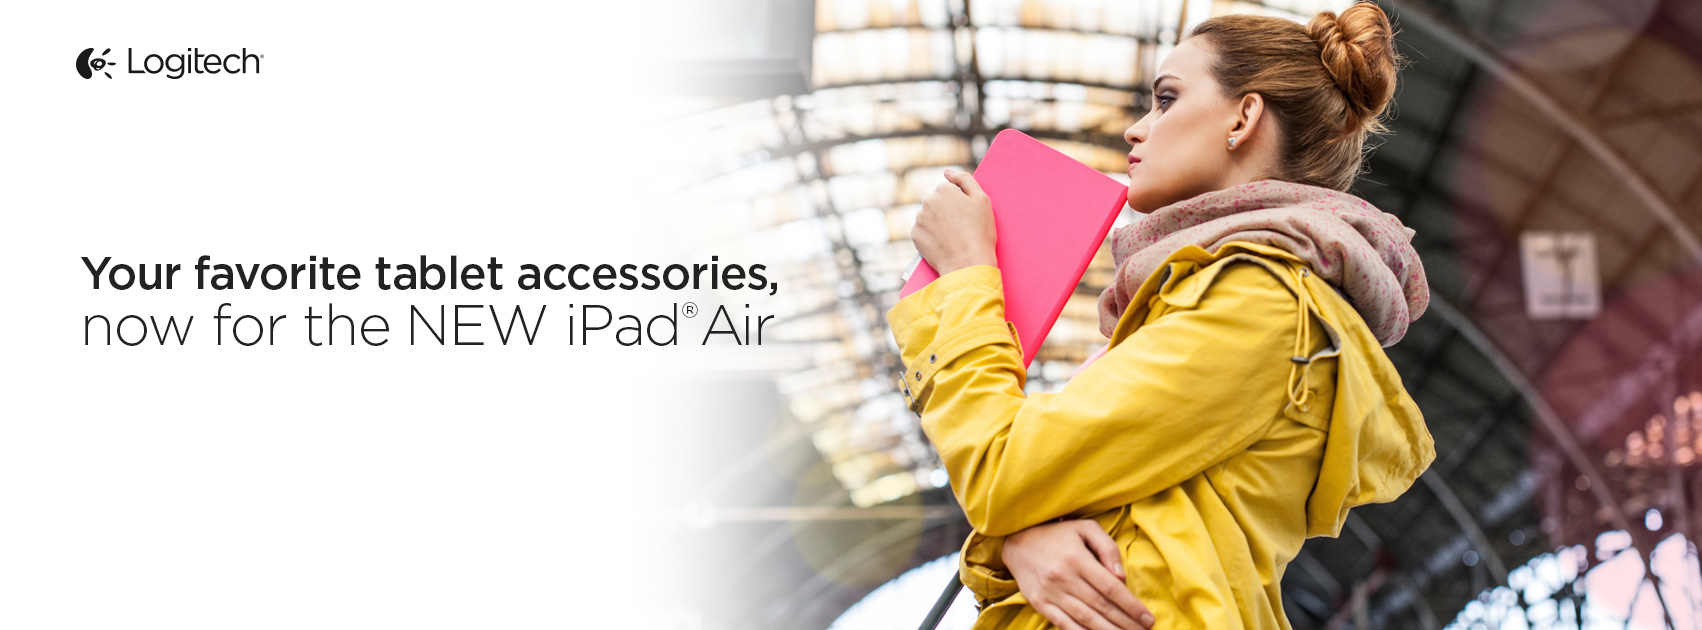 Logitech Announces Four New Accessories For Apple's iPad Air